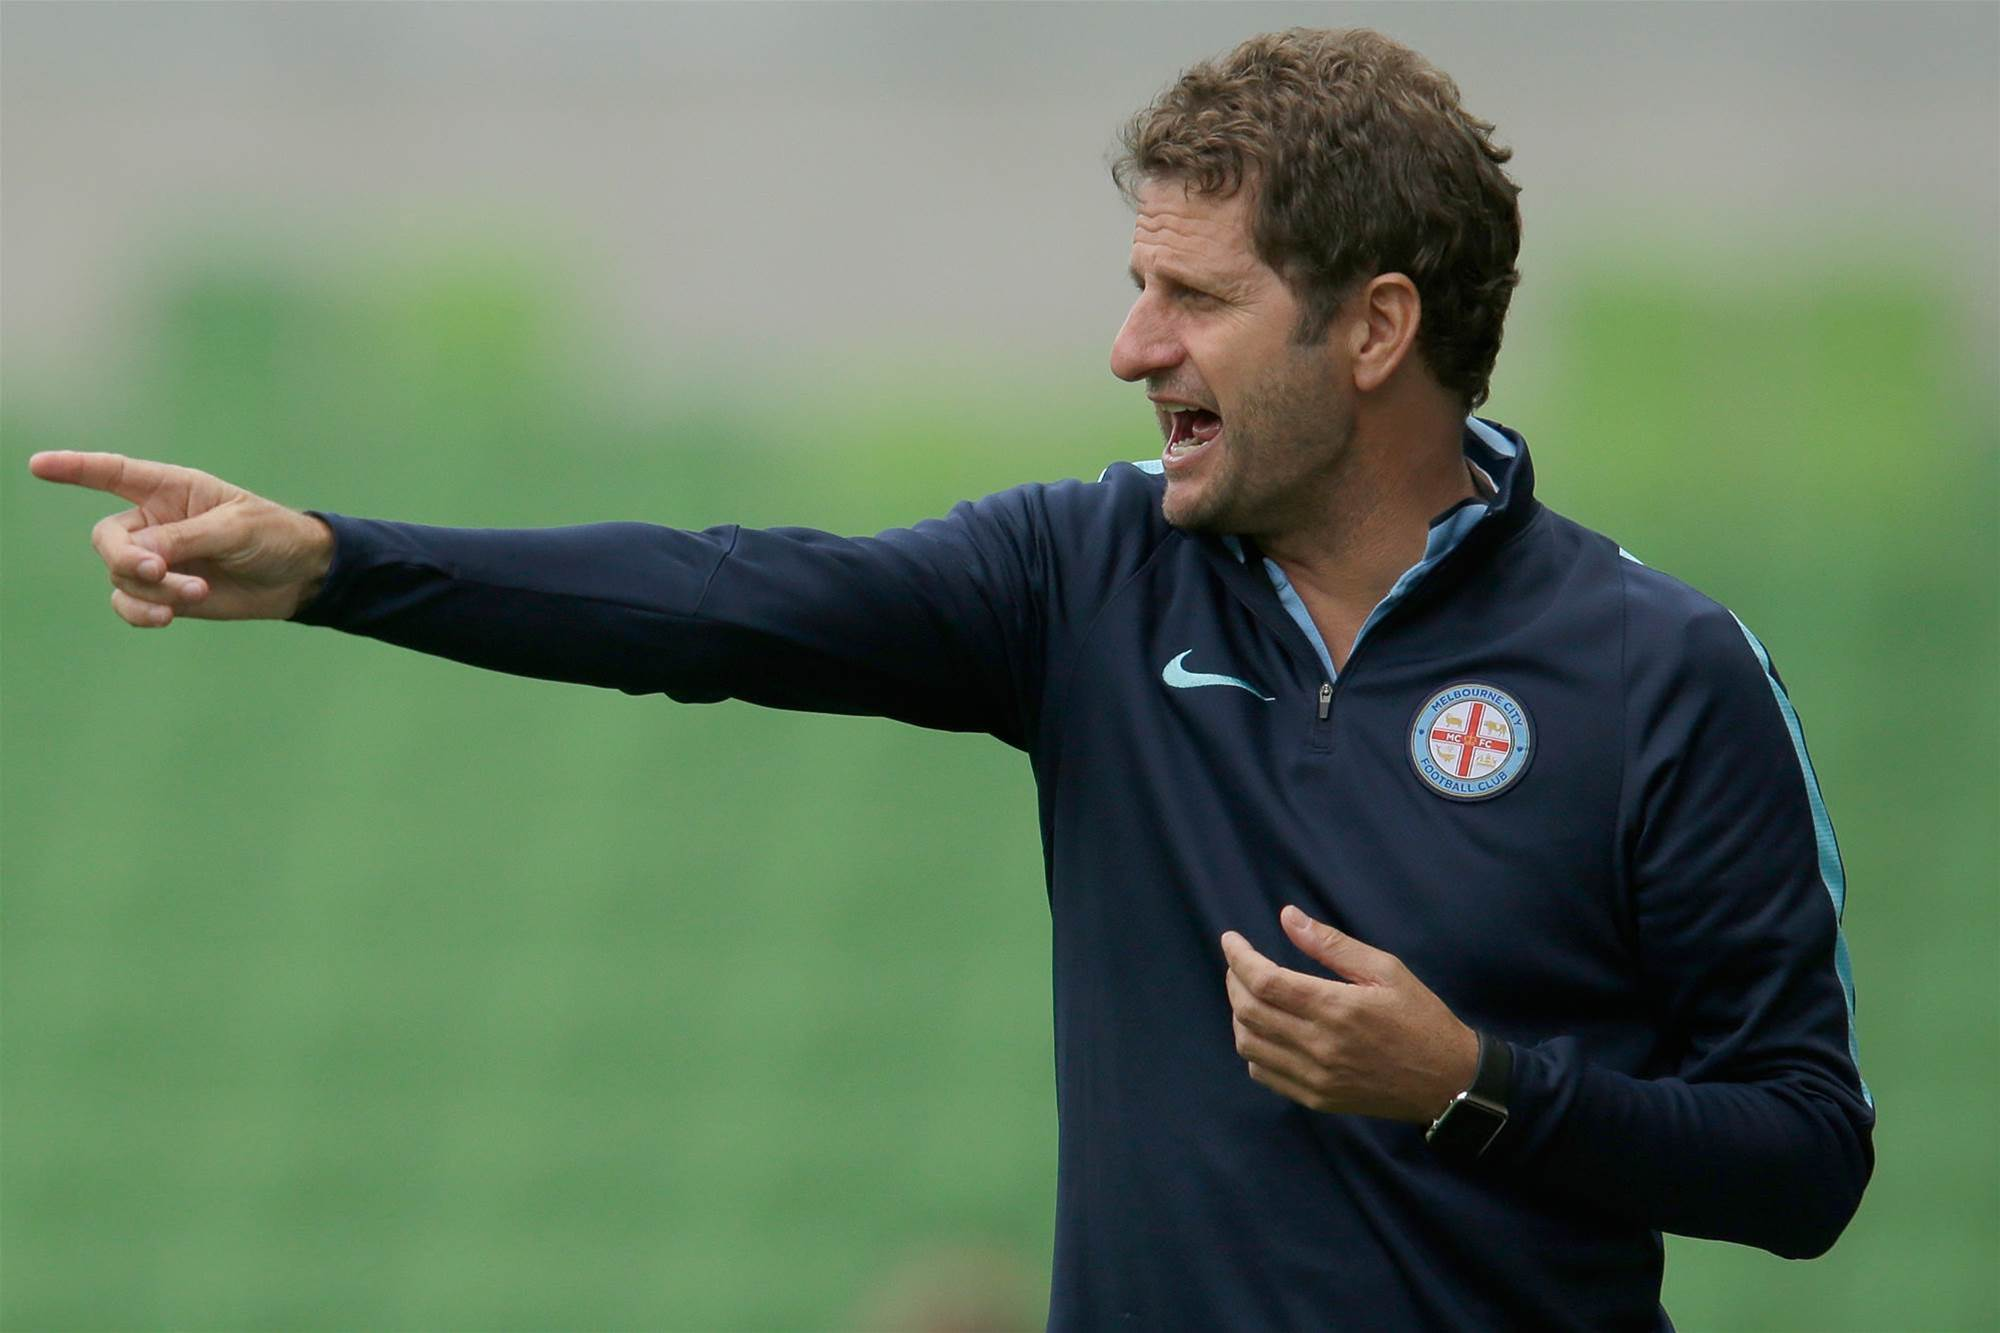 Aussie joins Arsenal coaching ranks